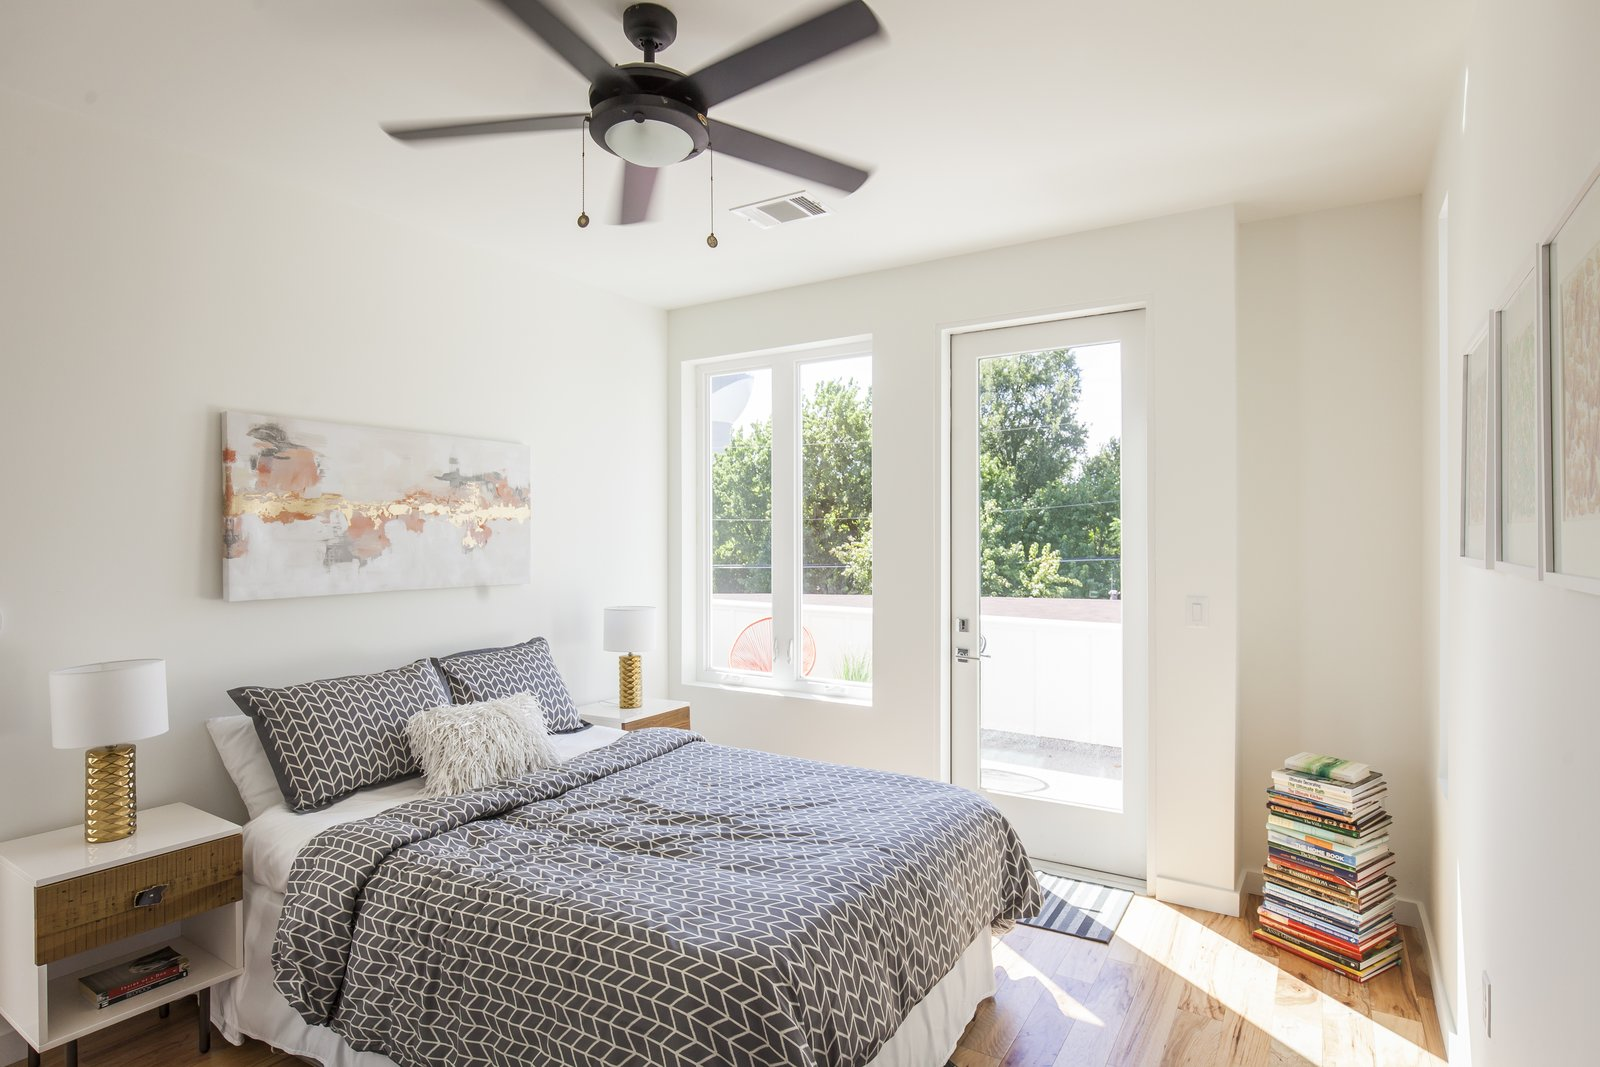 Unit B bedroom with medium toned hardwood floors and bed with chevron bedspread under ceiling fan.